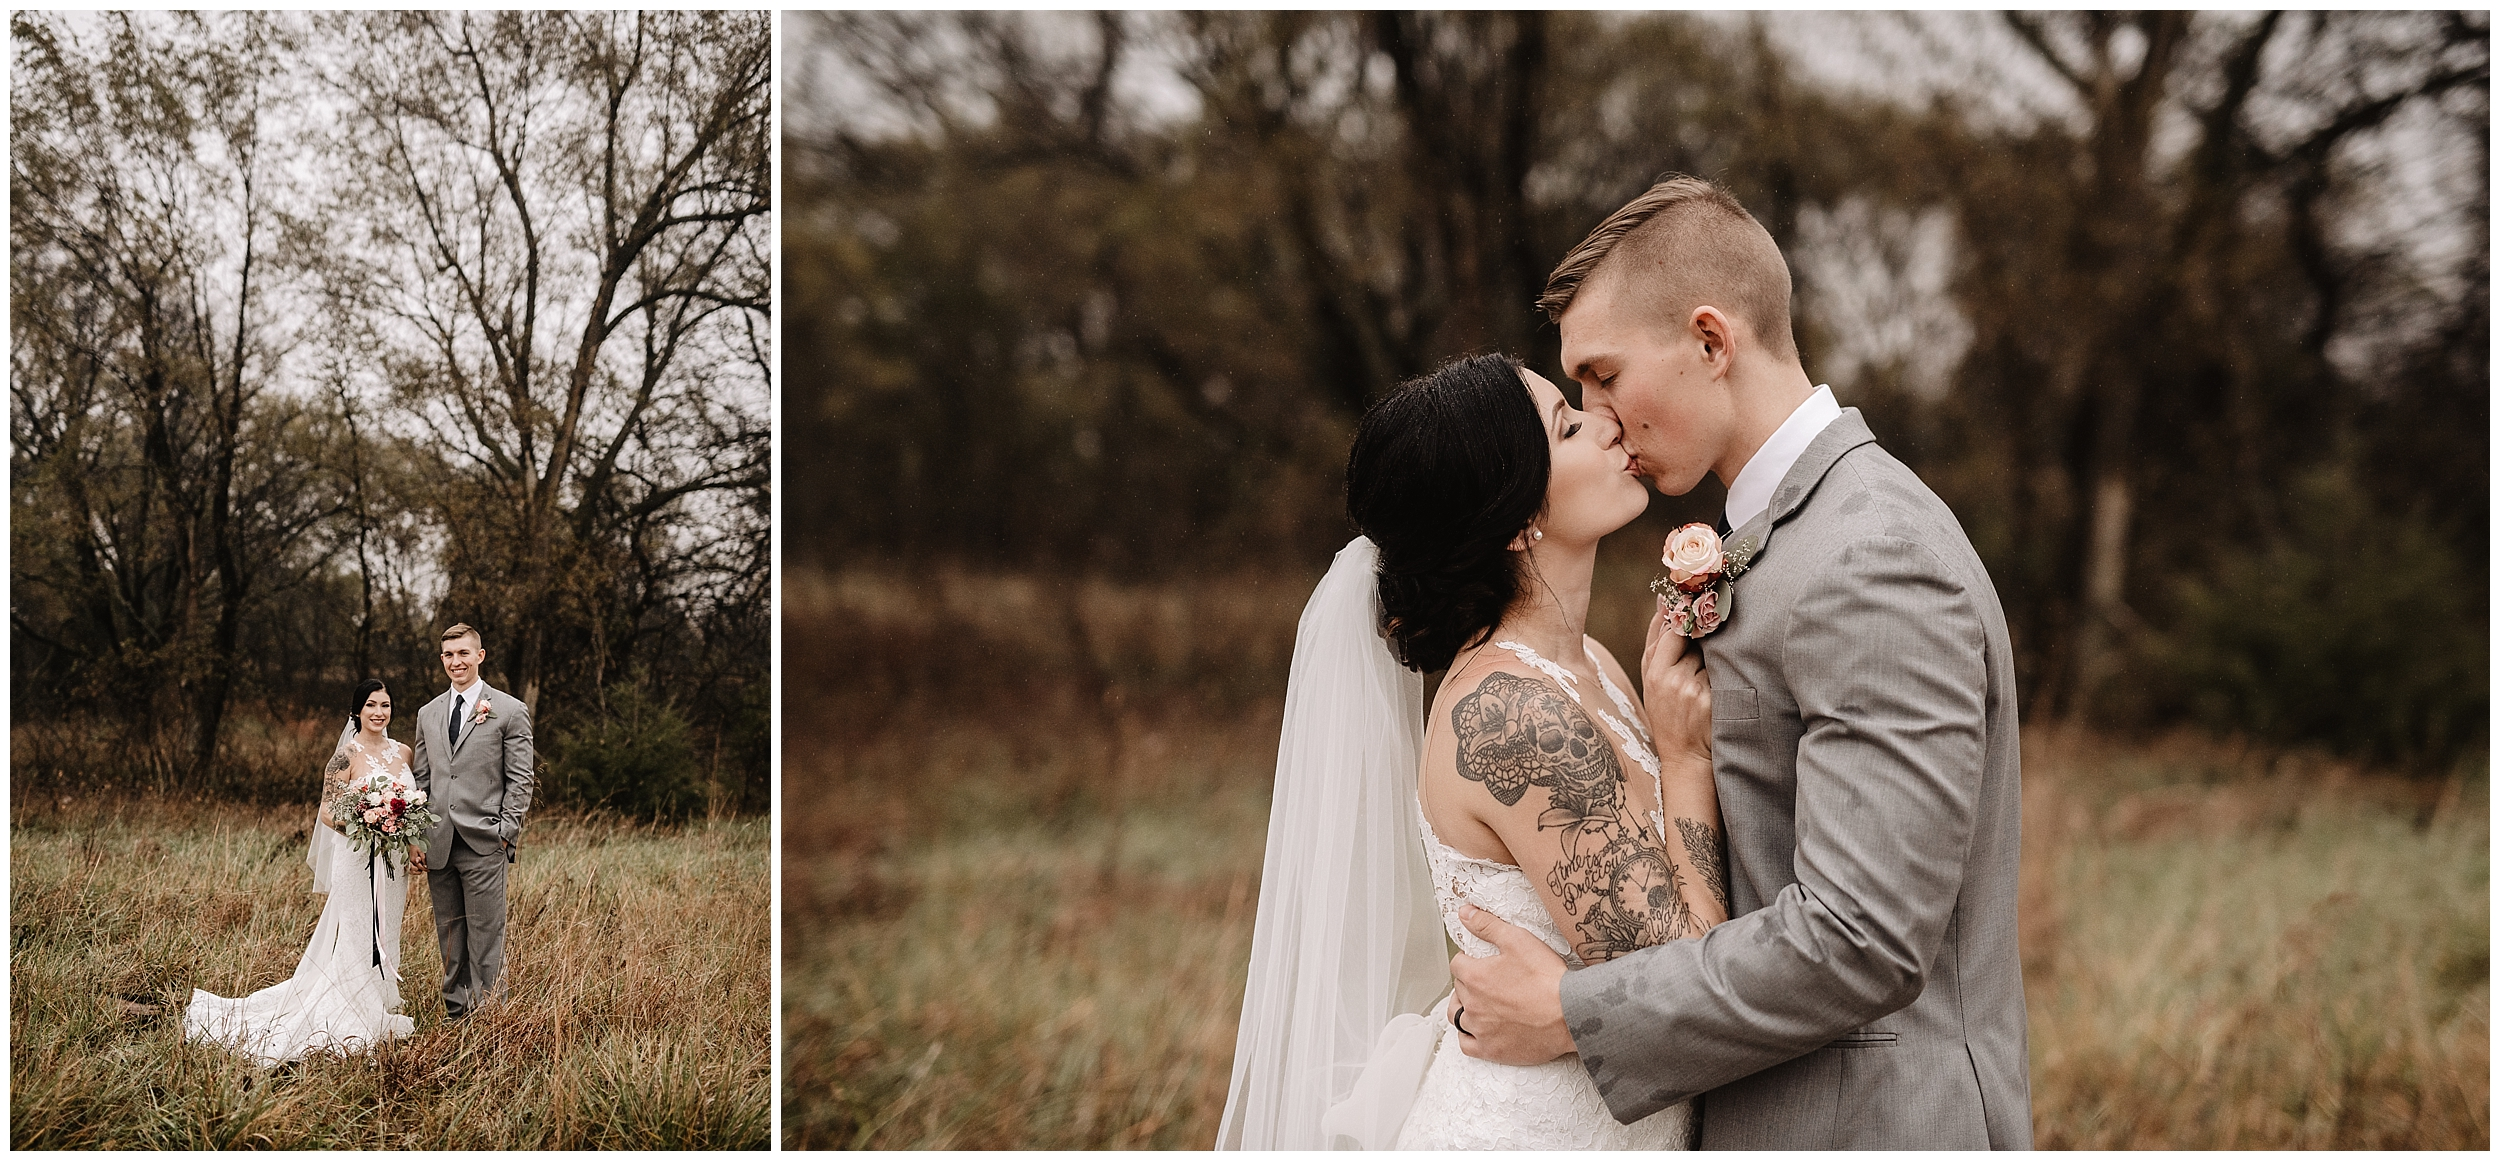 oklahoma wedding photography first look bride groom wedding day sweet rustic timbers outdoor viola kansas overcast rain